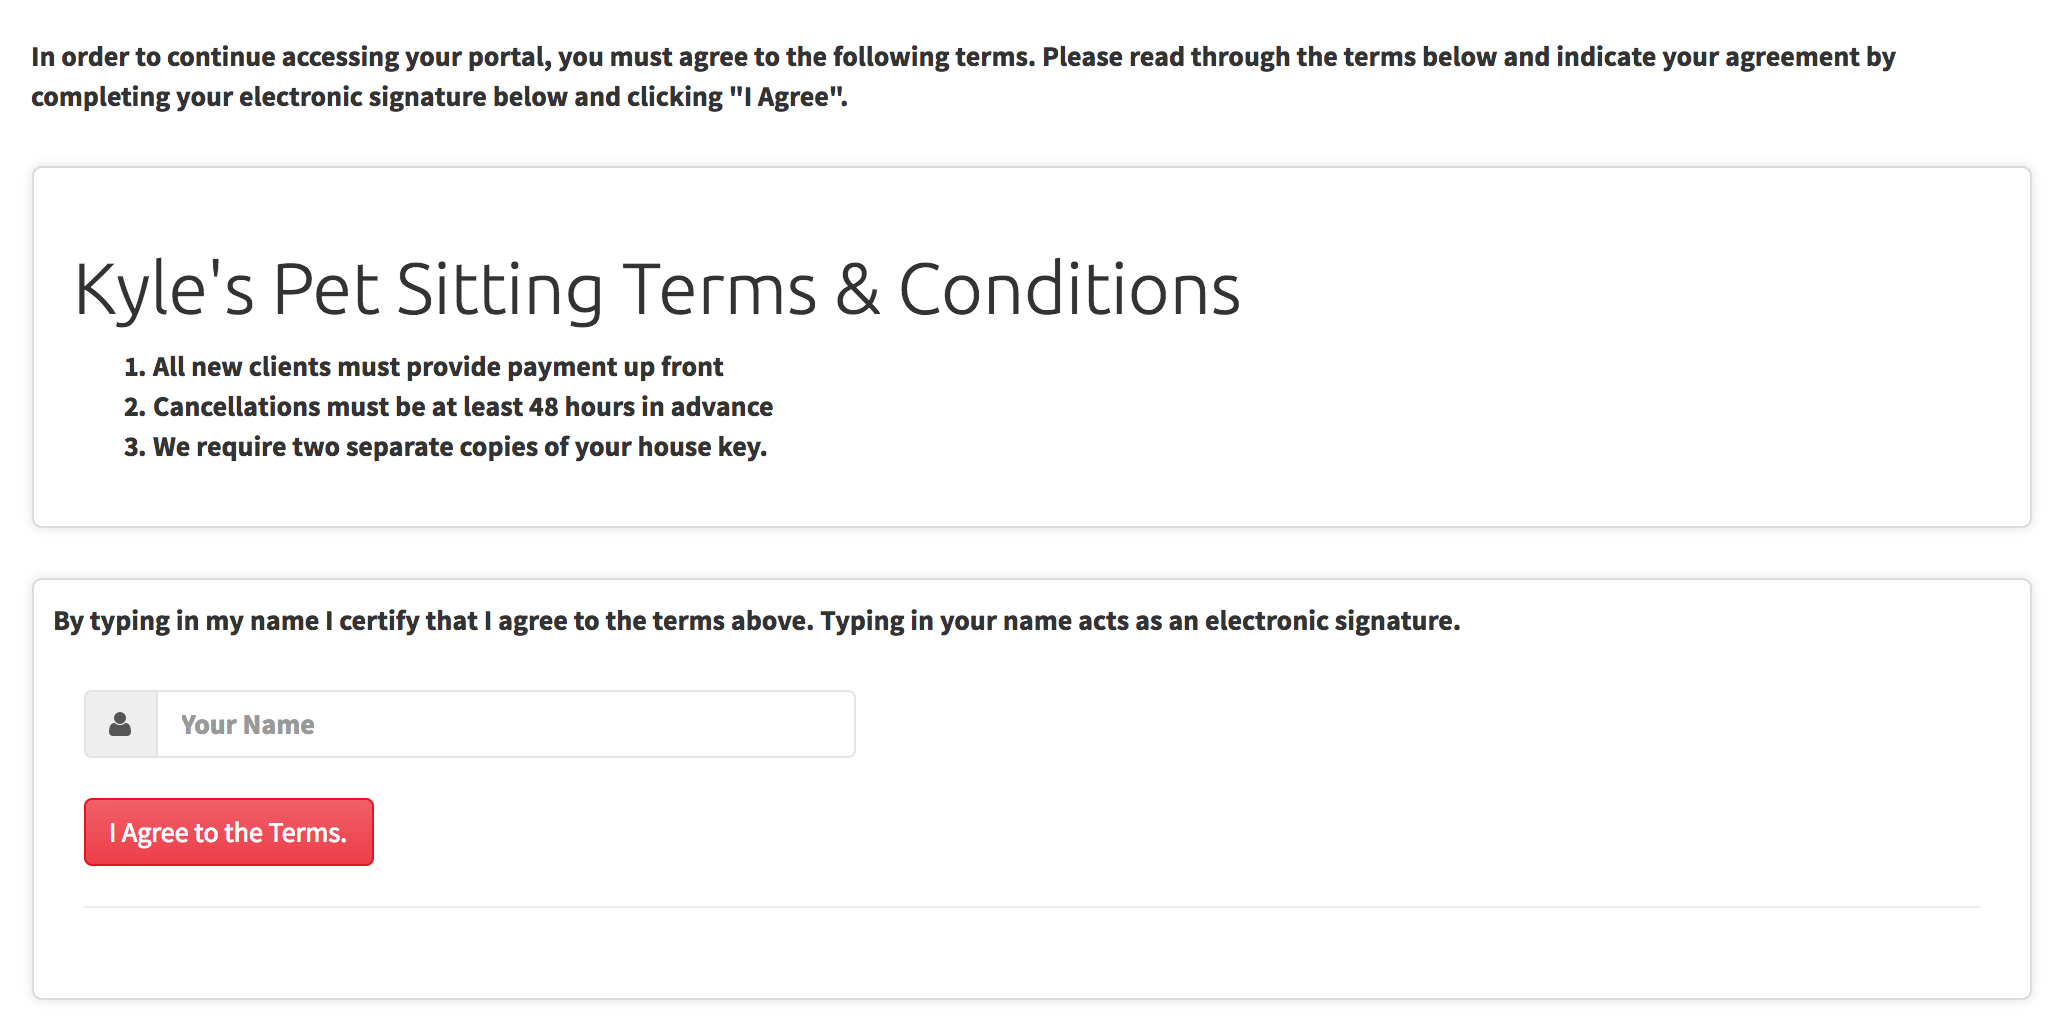 Creating A Portal Policy Agreement Time To Pet Knowledge Base